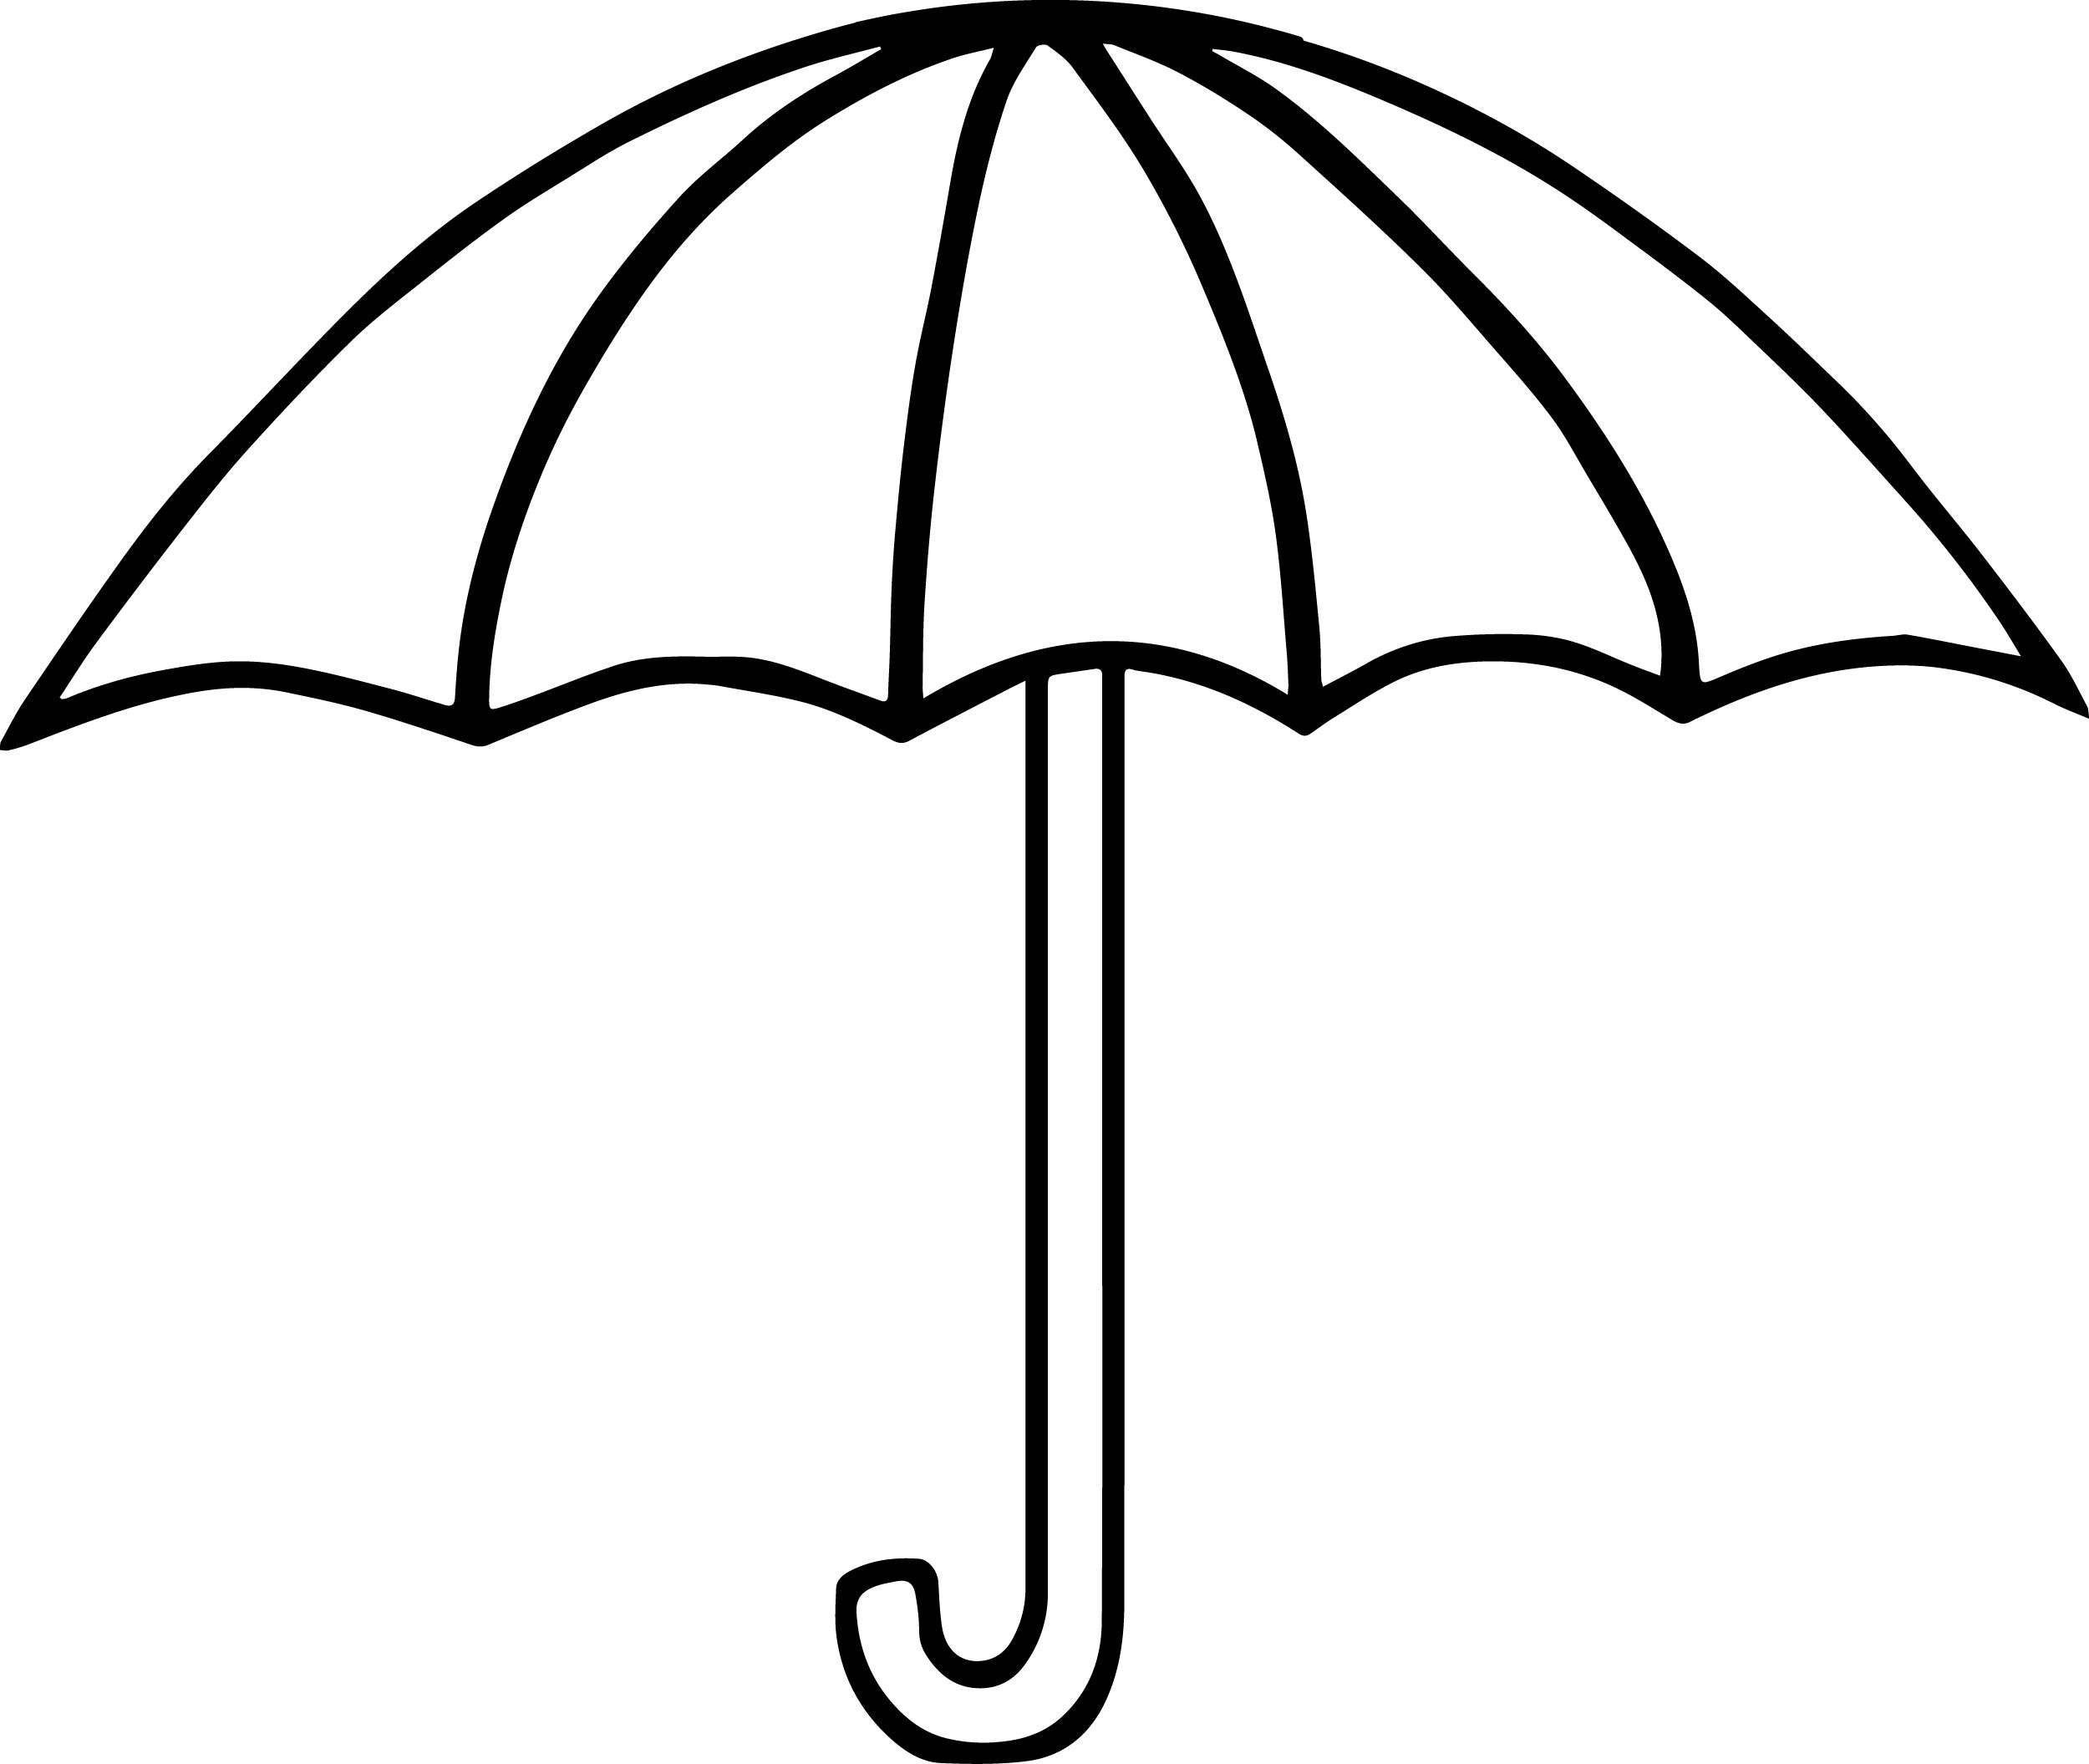 Gratifying image intended for printable umbrellas